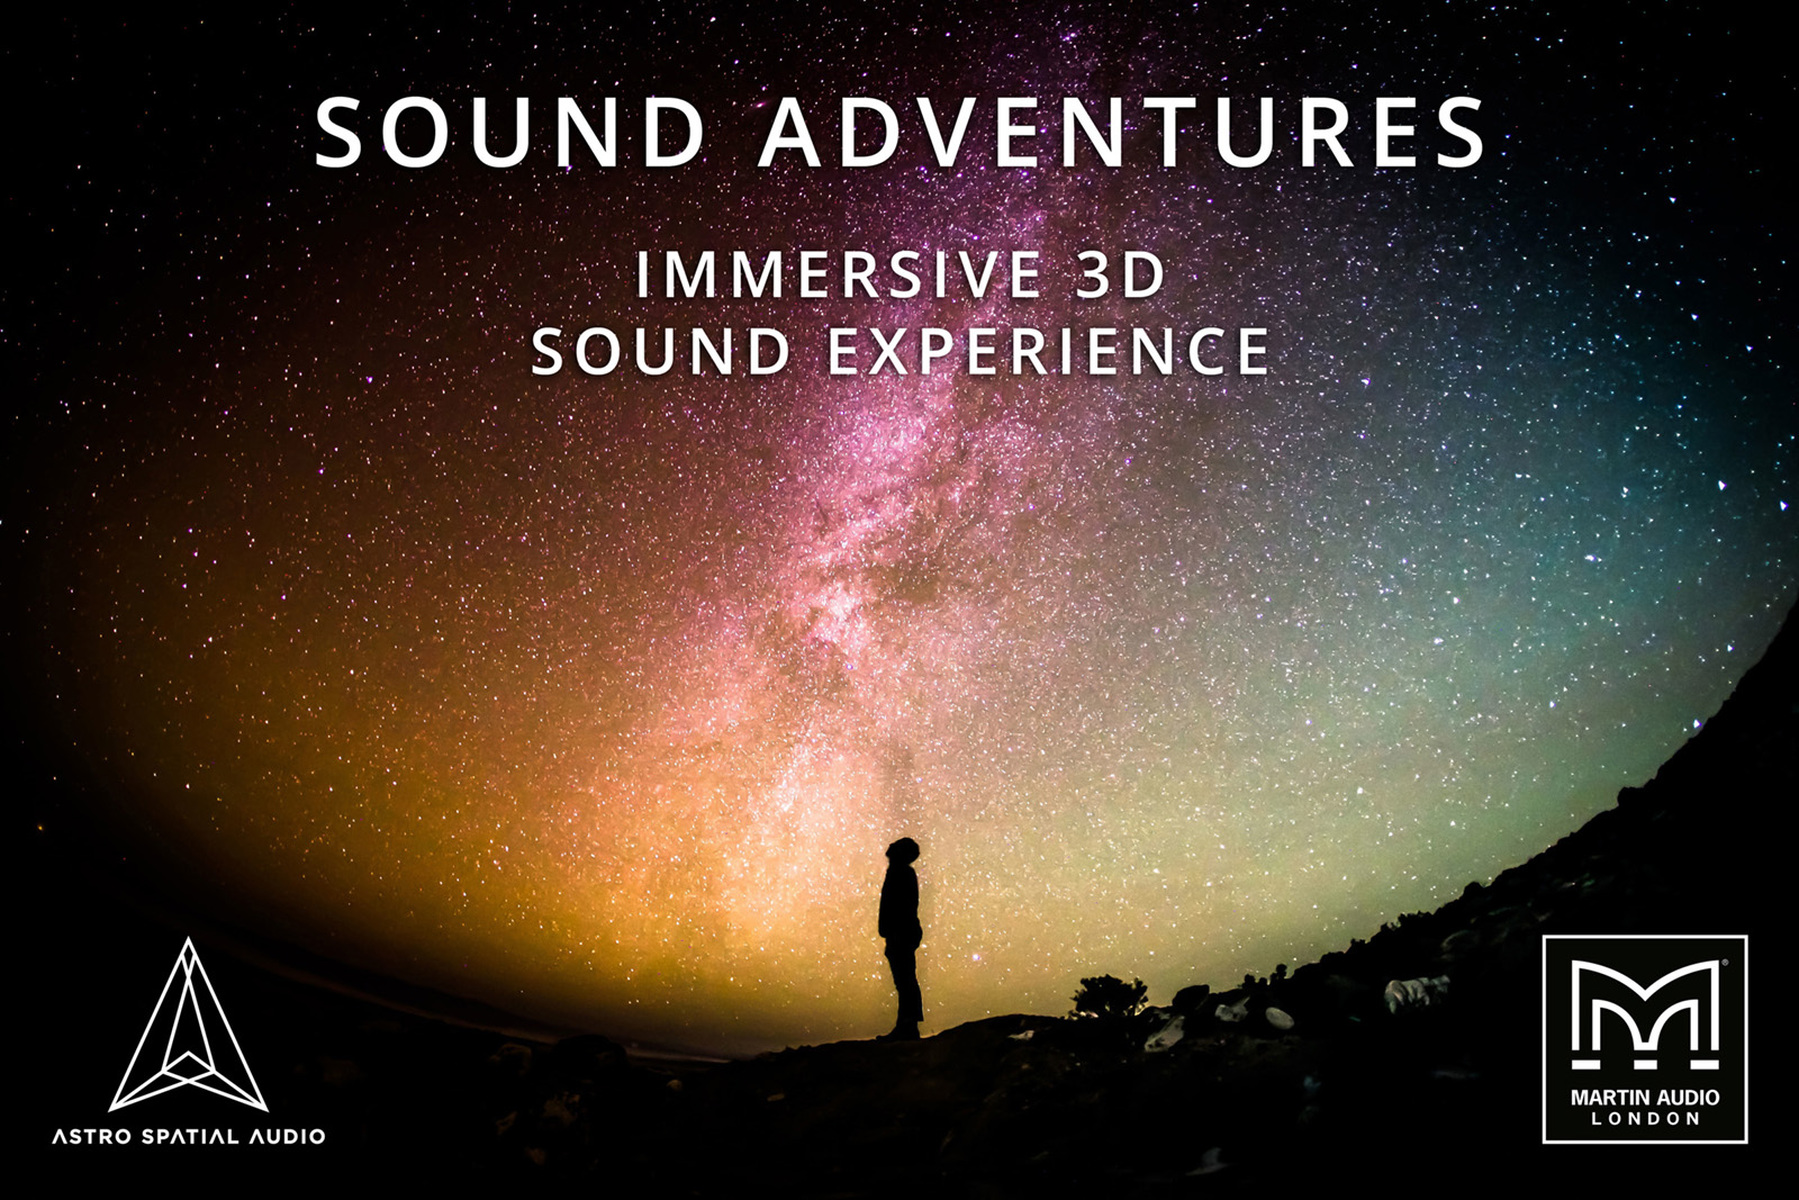 Martin Audio to Showcase Immersive 3D Sound Experience at